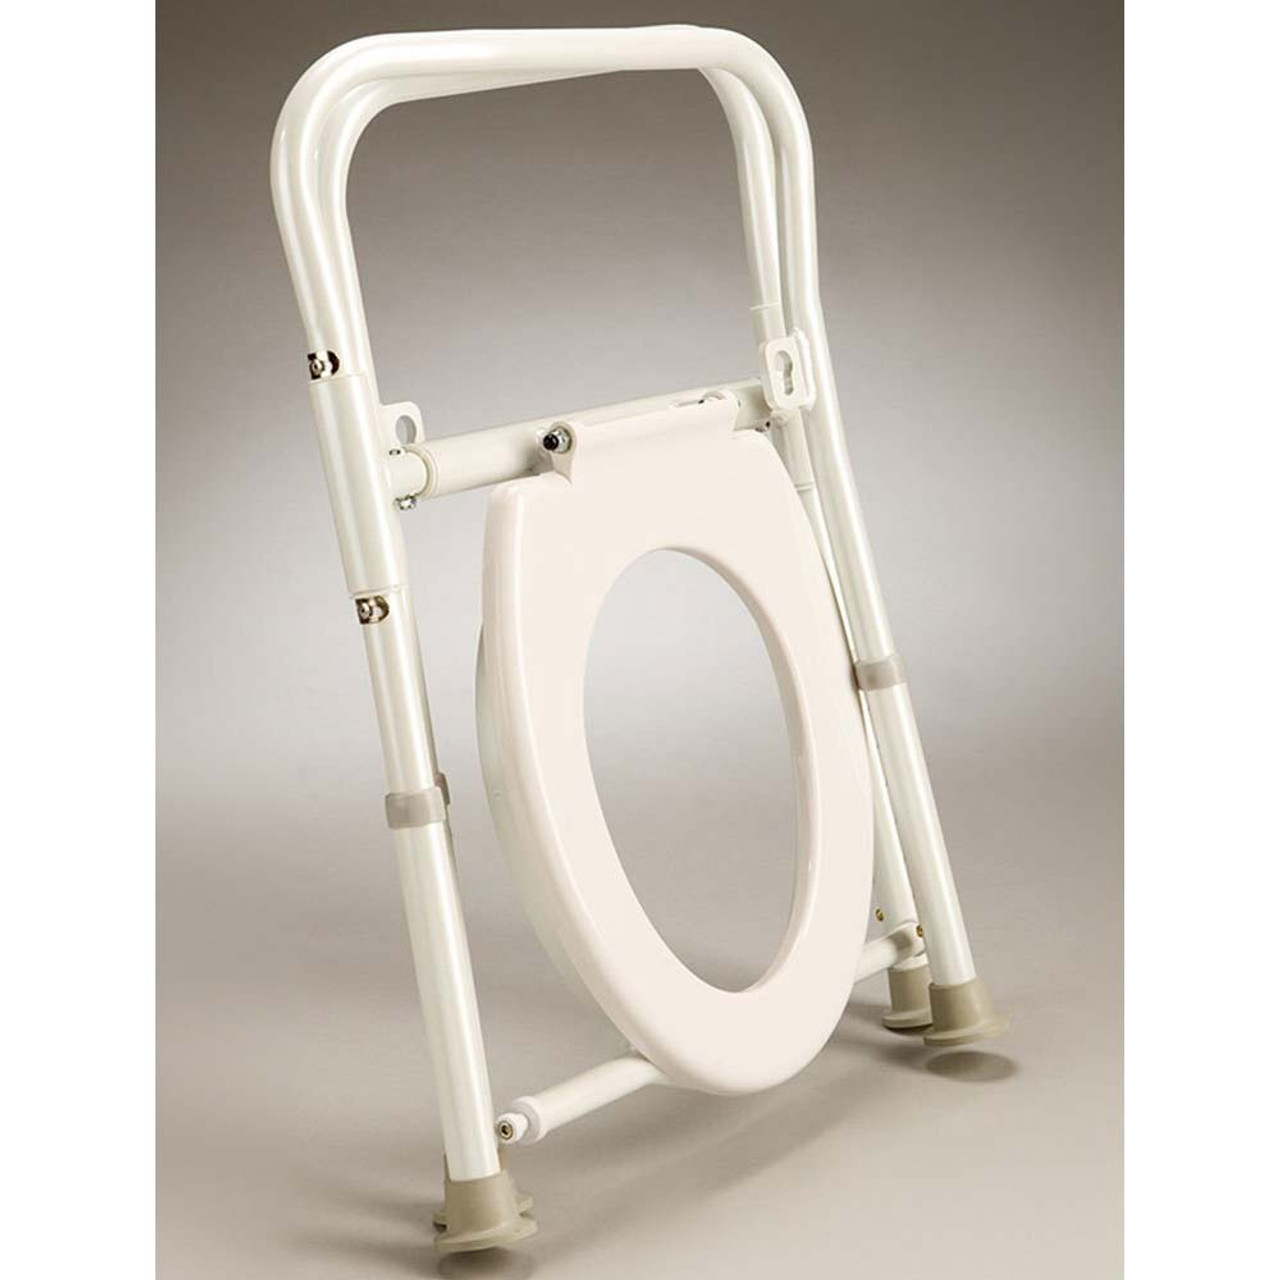 Folding Over Toilet Aid AJ0060 Folded